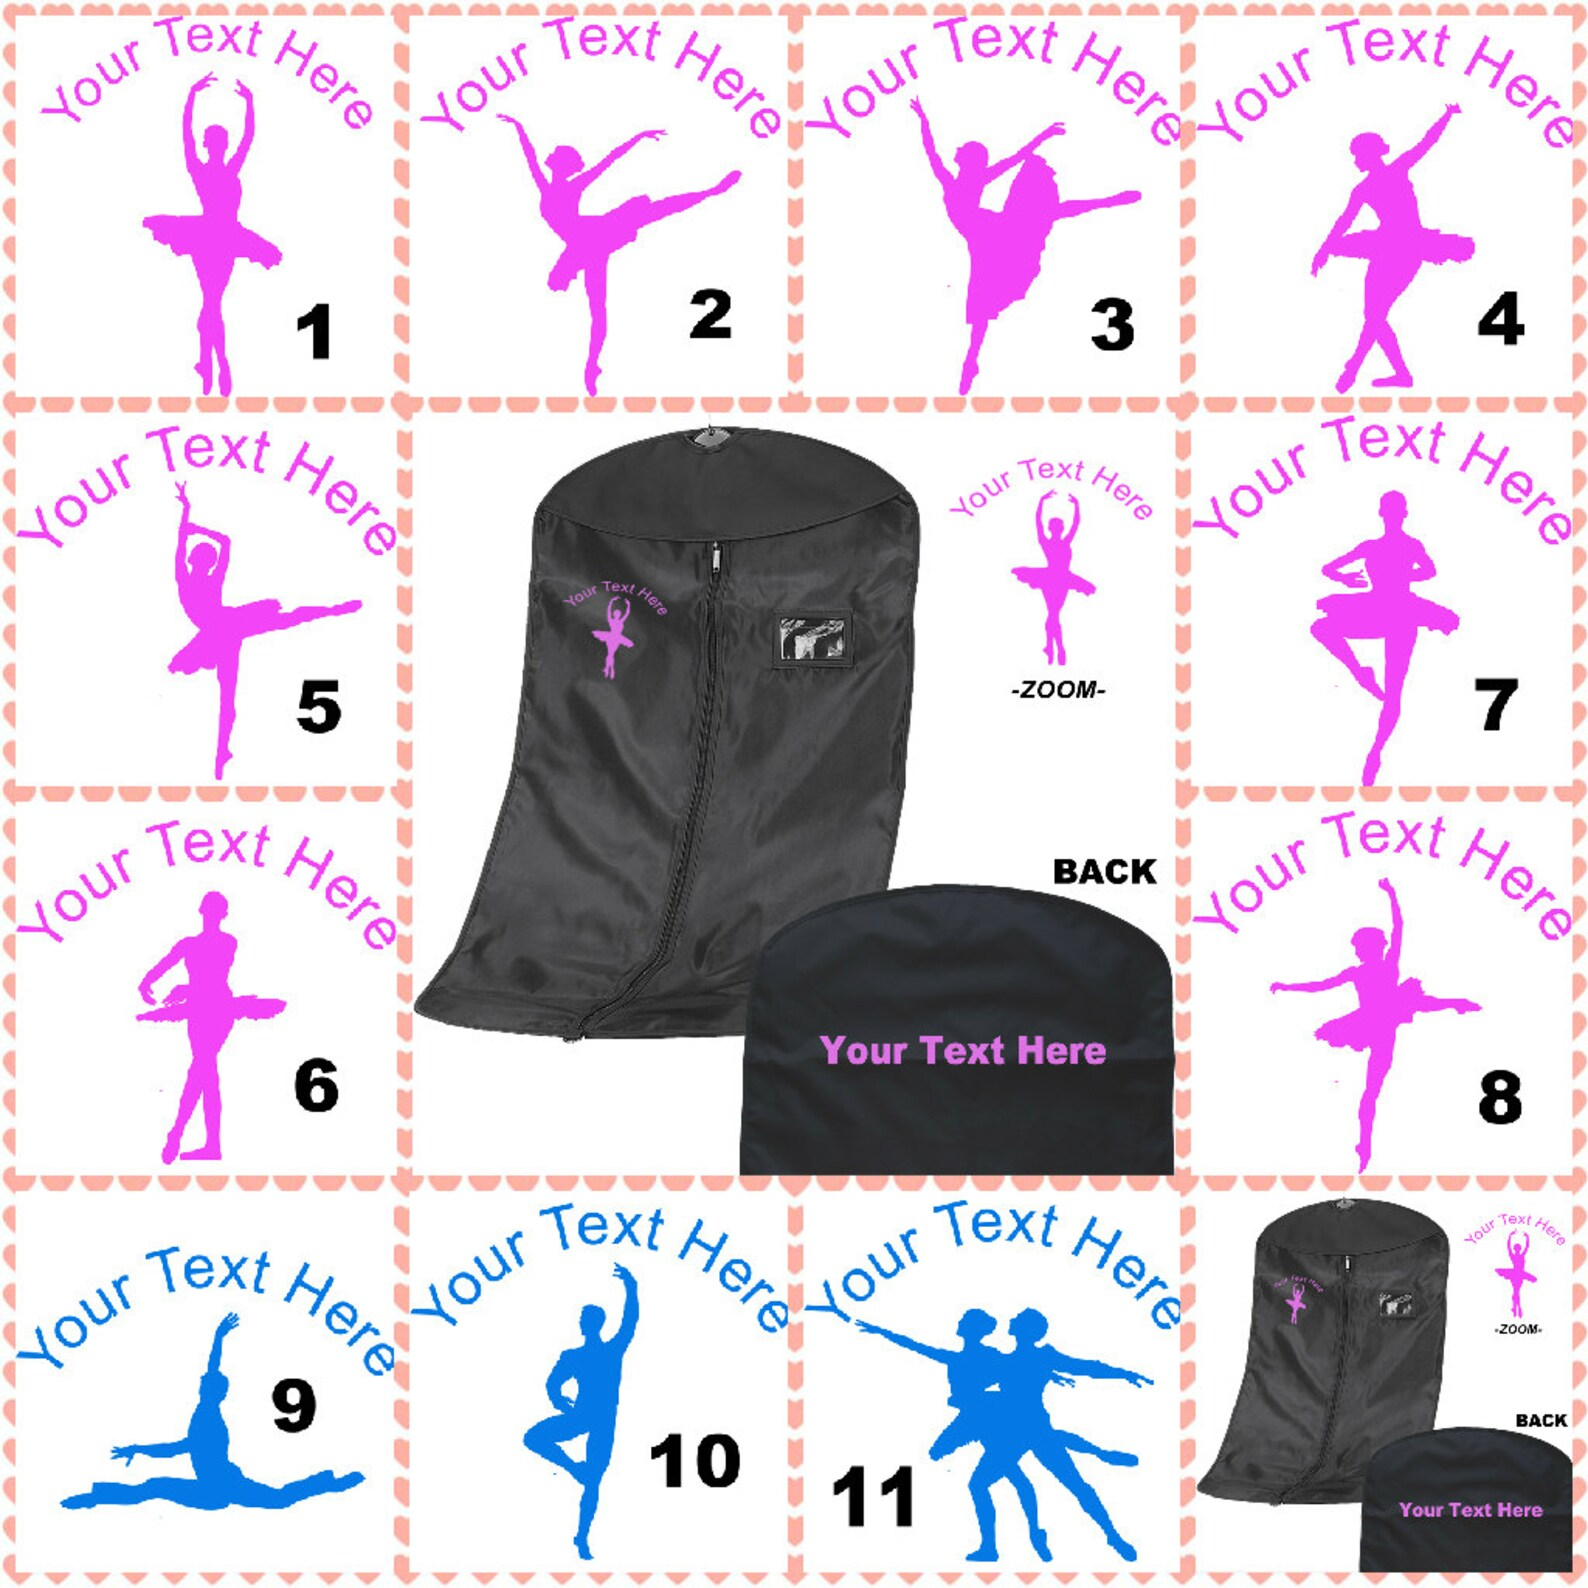 personalised printed ballet/dance suit carrier/costume bag - leotard skirts shoe - personalized item